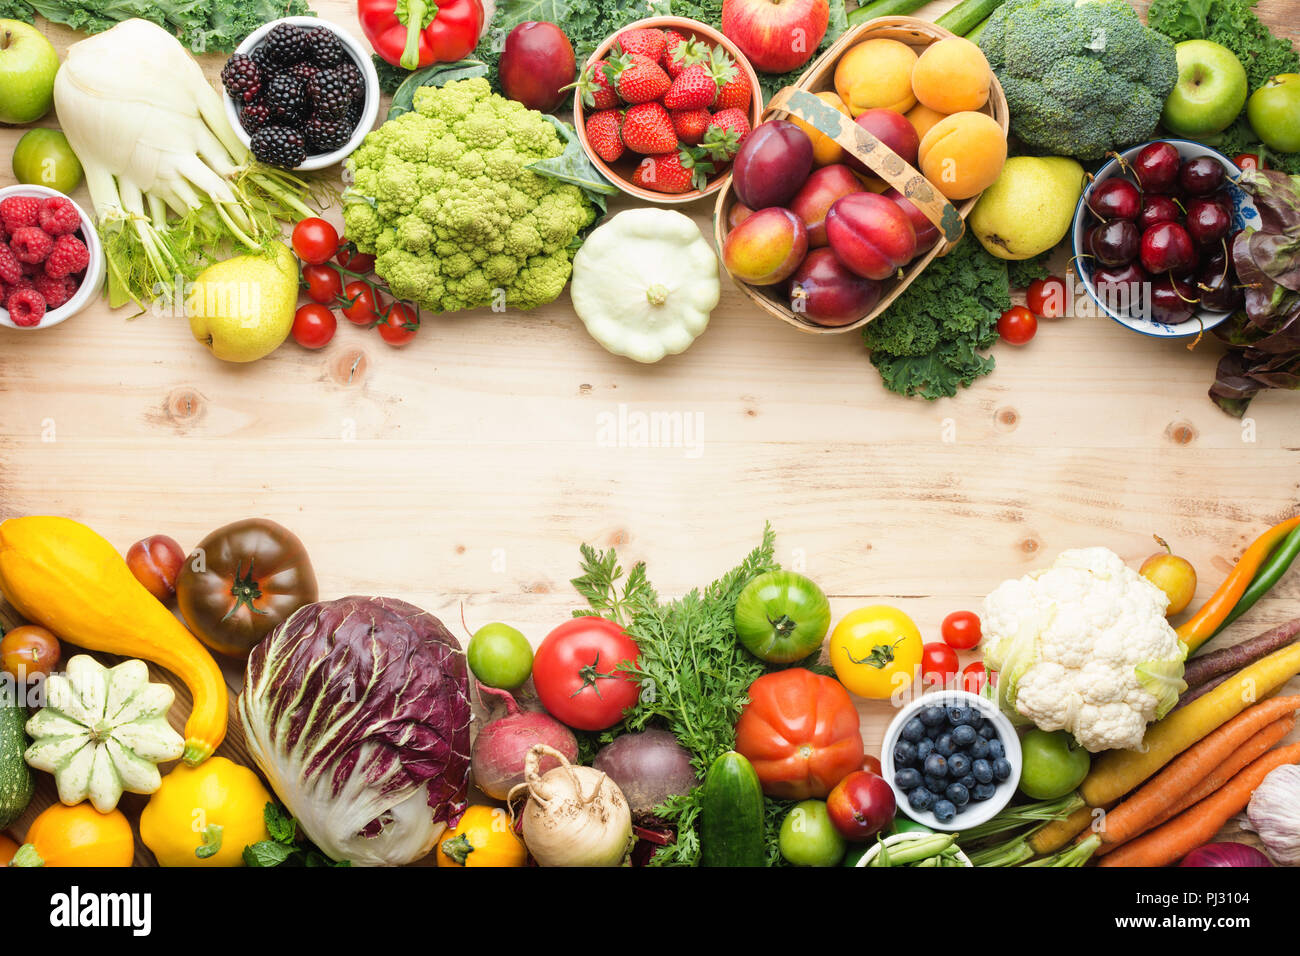 Fresh organic fruits vegetables berries, cherries apricots strawberries cabbage broccoli cauliflower squash tomatoes carrots spring onions beans beetroot, pepper, copy space, top view, selective focus Stock Photo